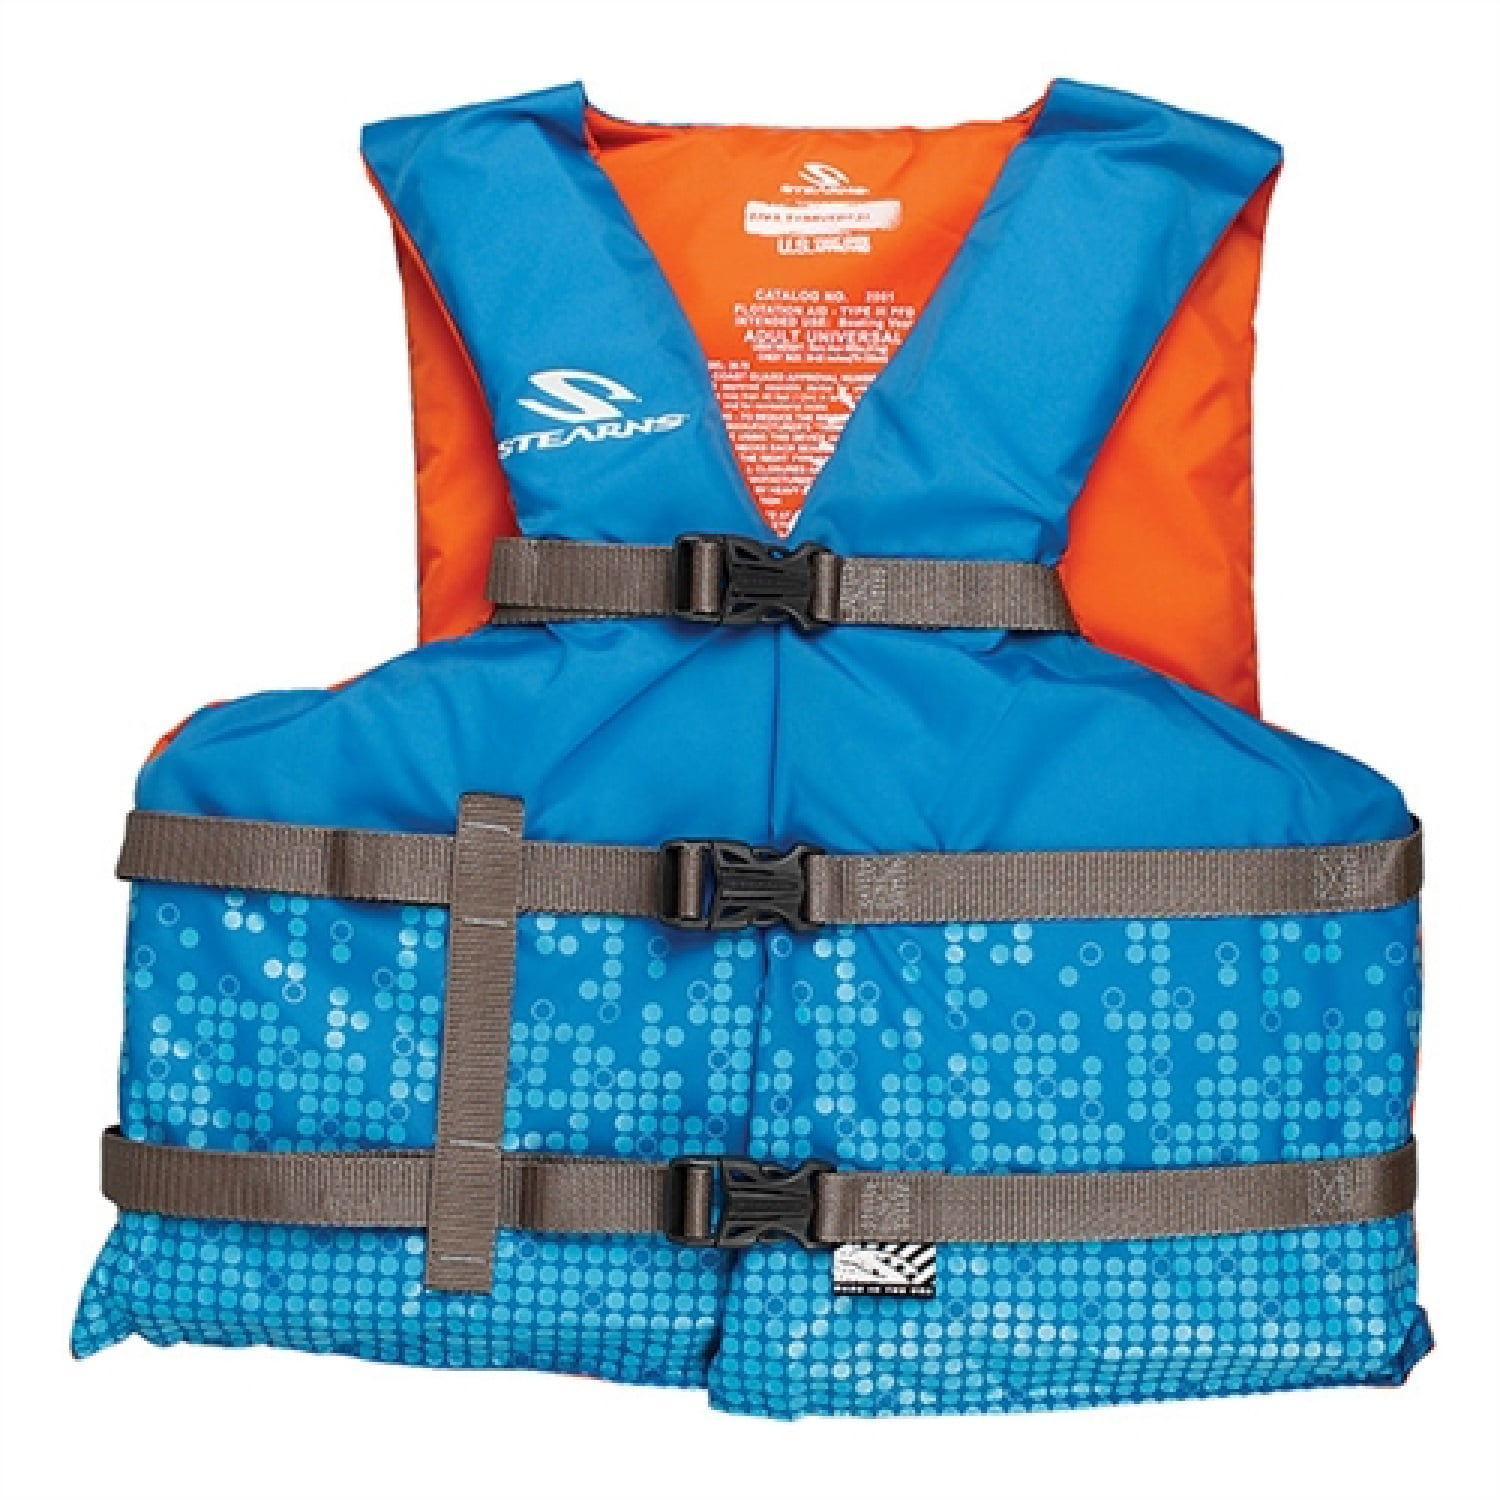 Stearns Adult Nylon Universal Life Jacket by COLEMAN